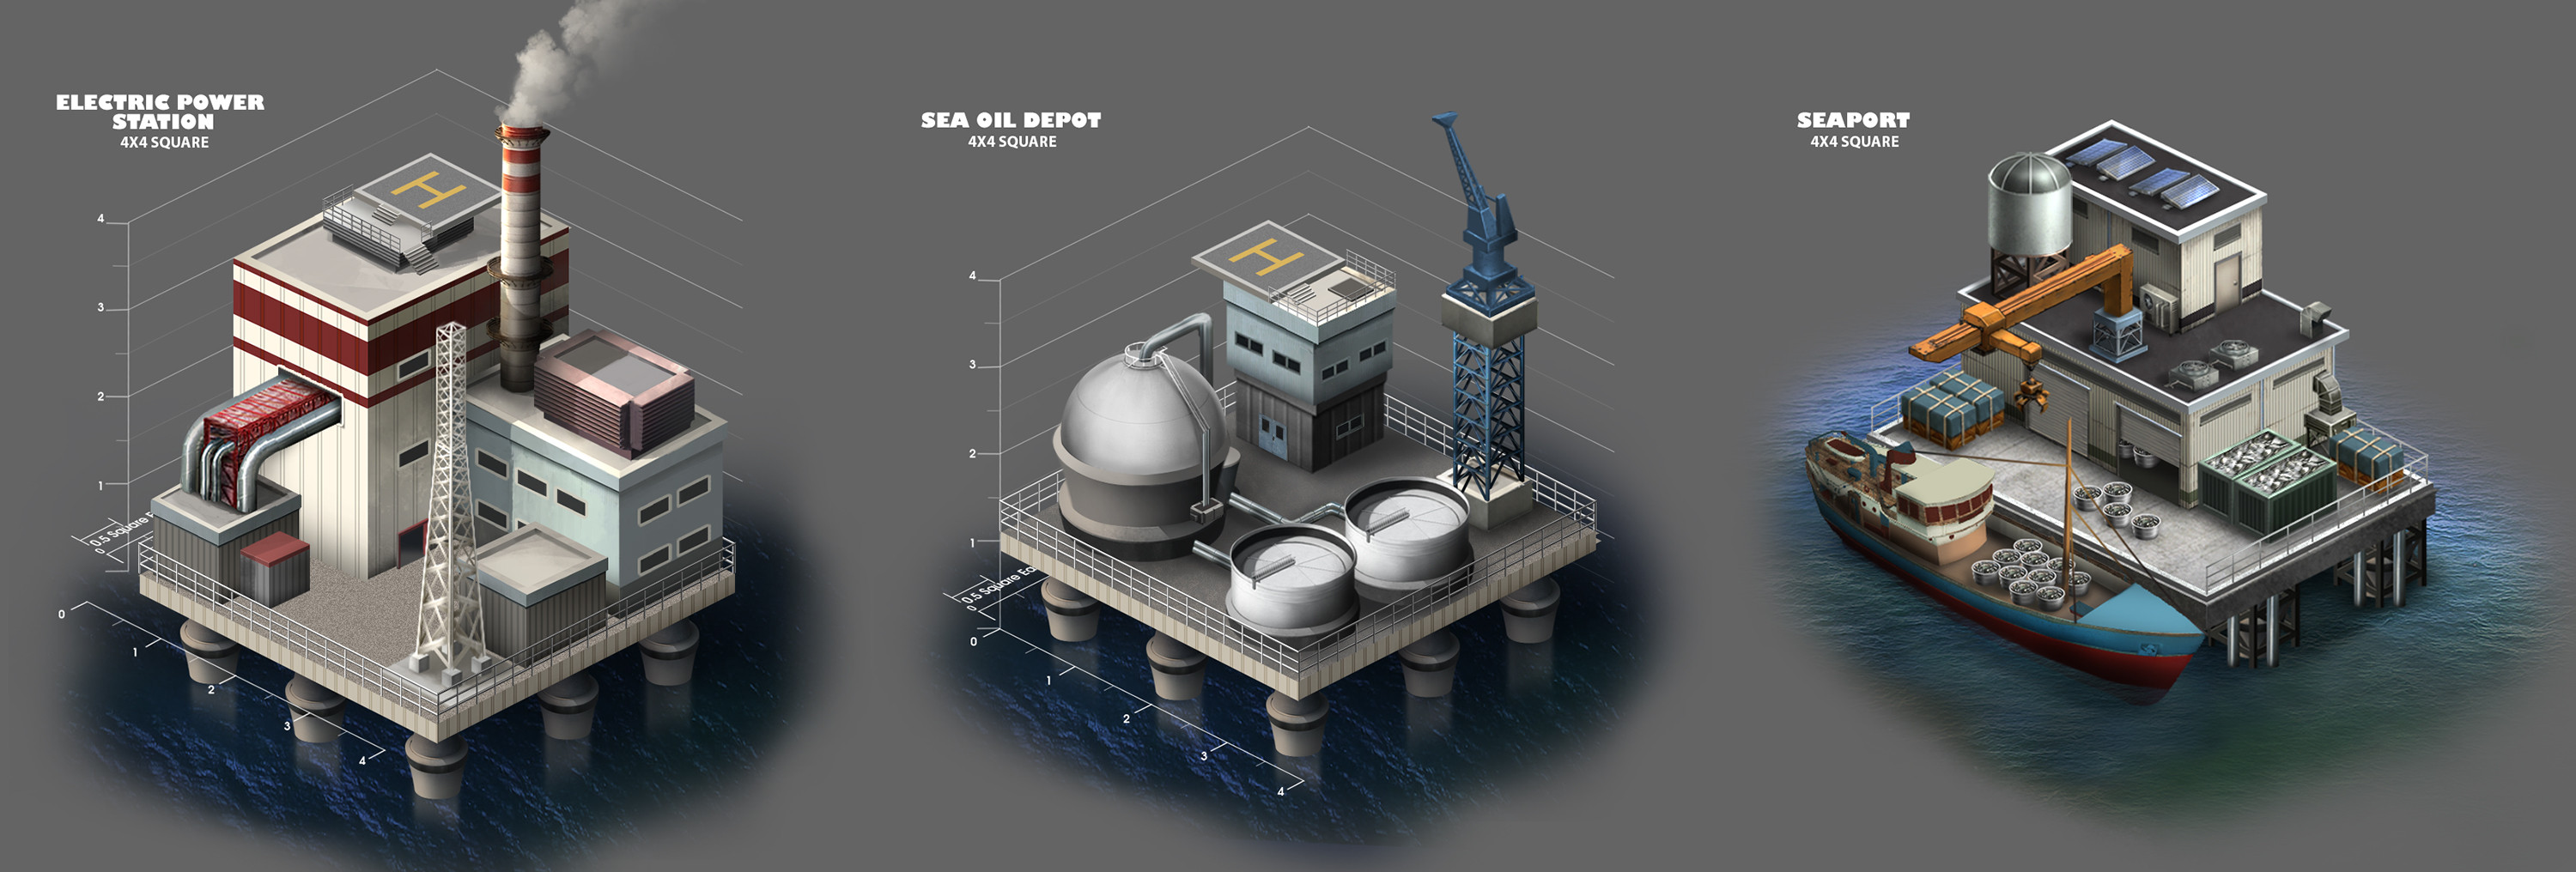 Sea base structures